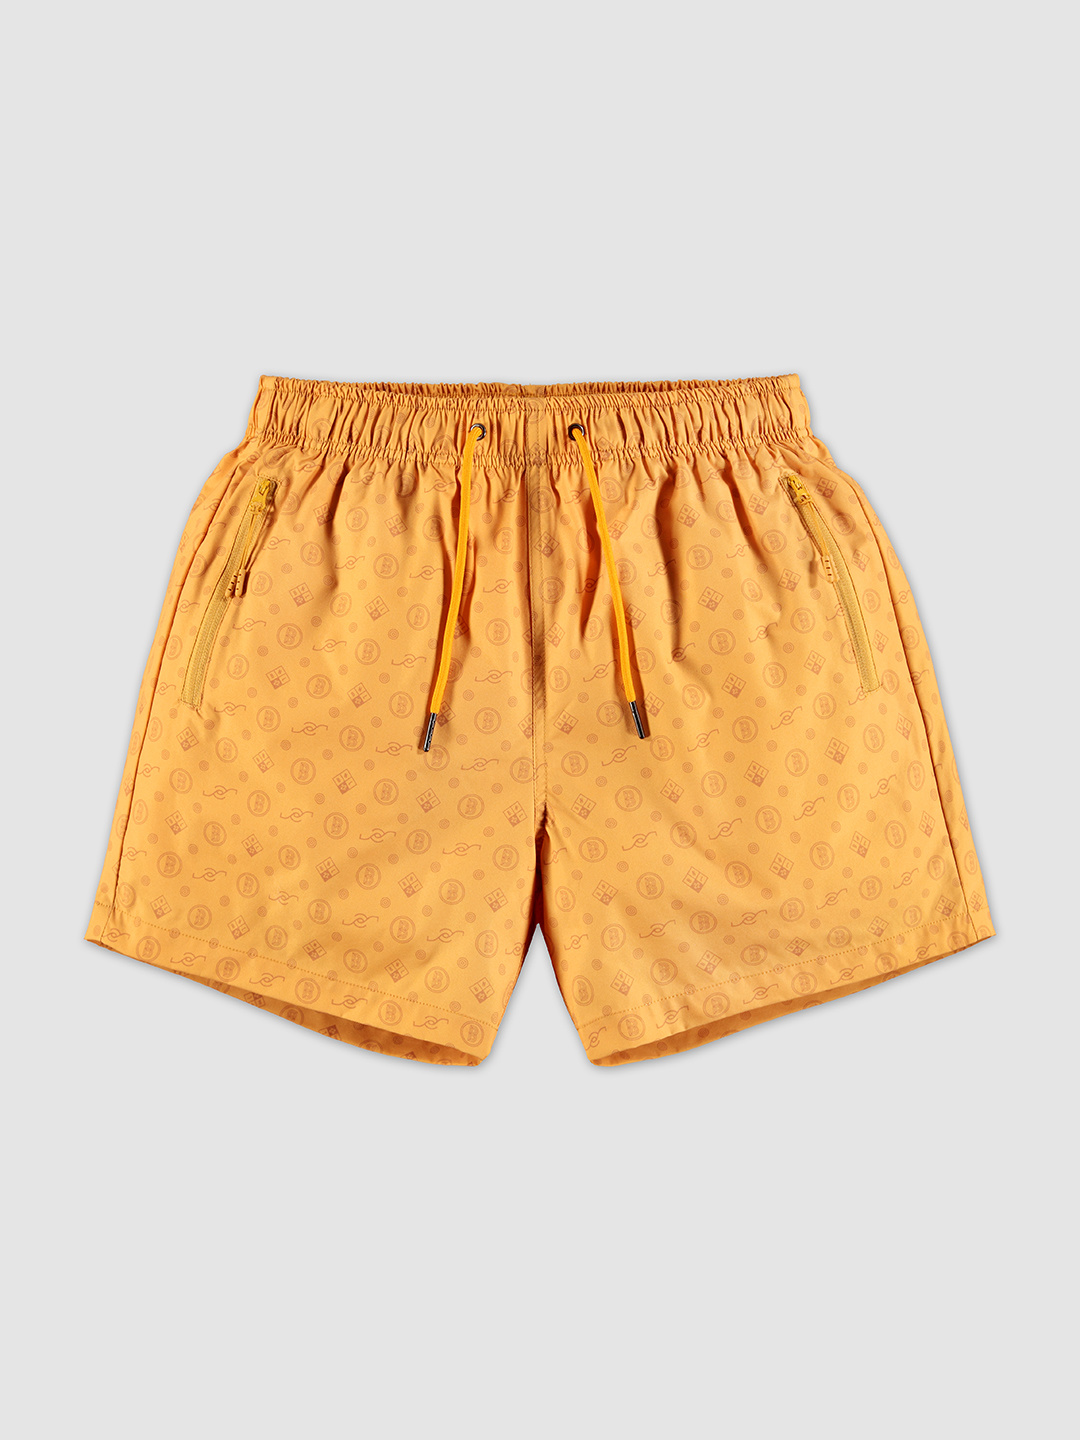 All-over Pattern Swimshorts Yellow